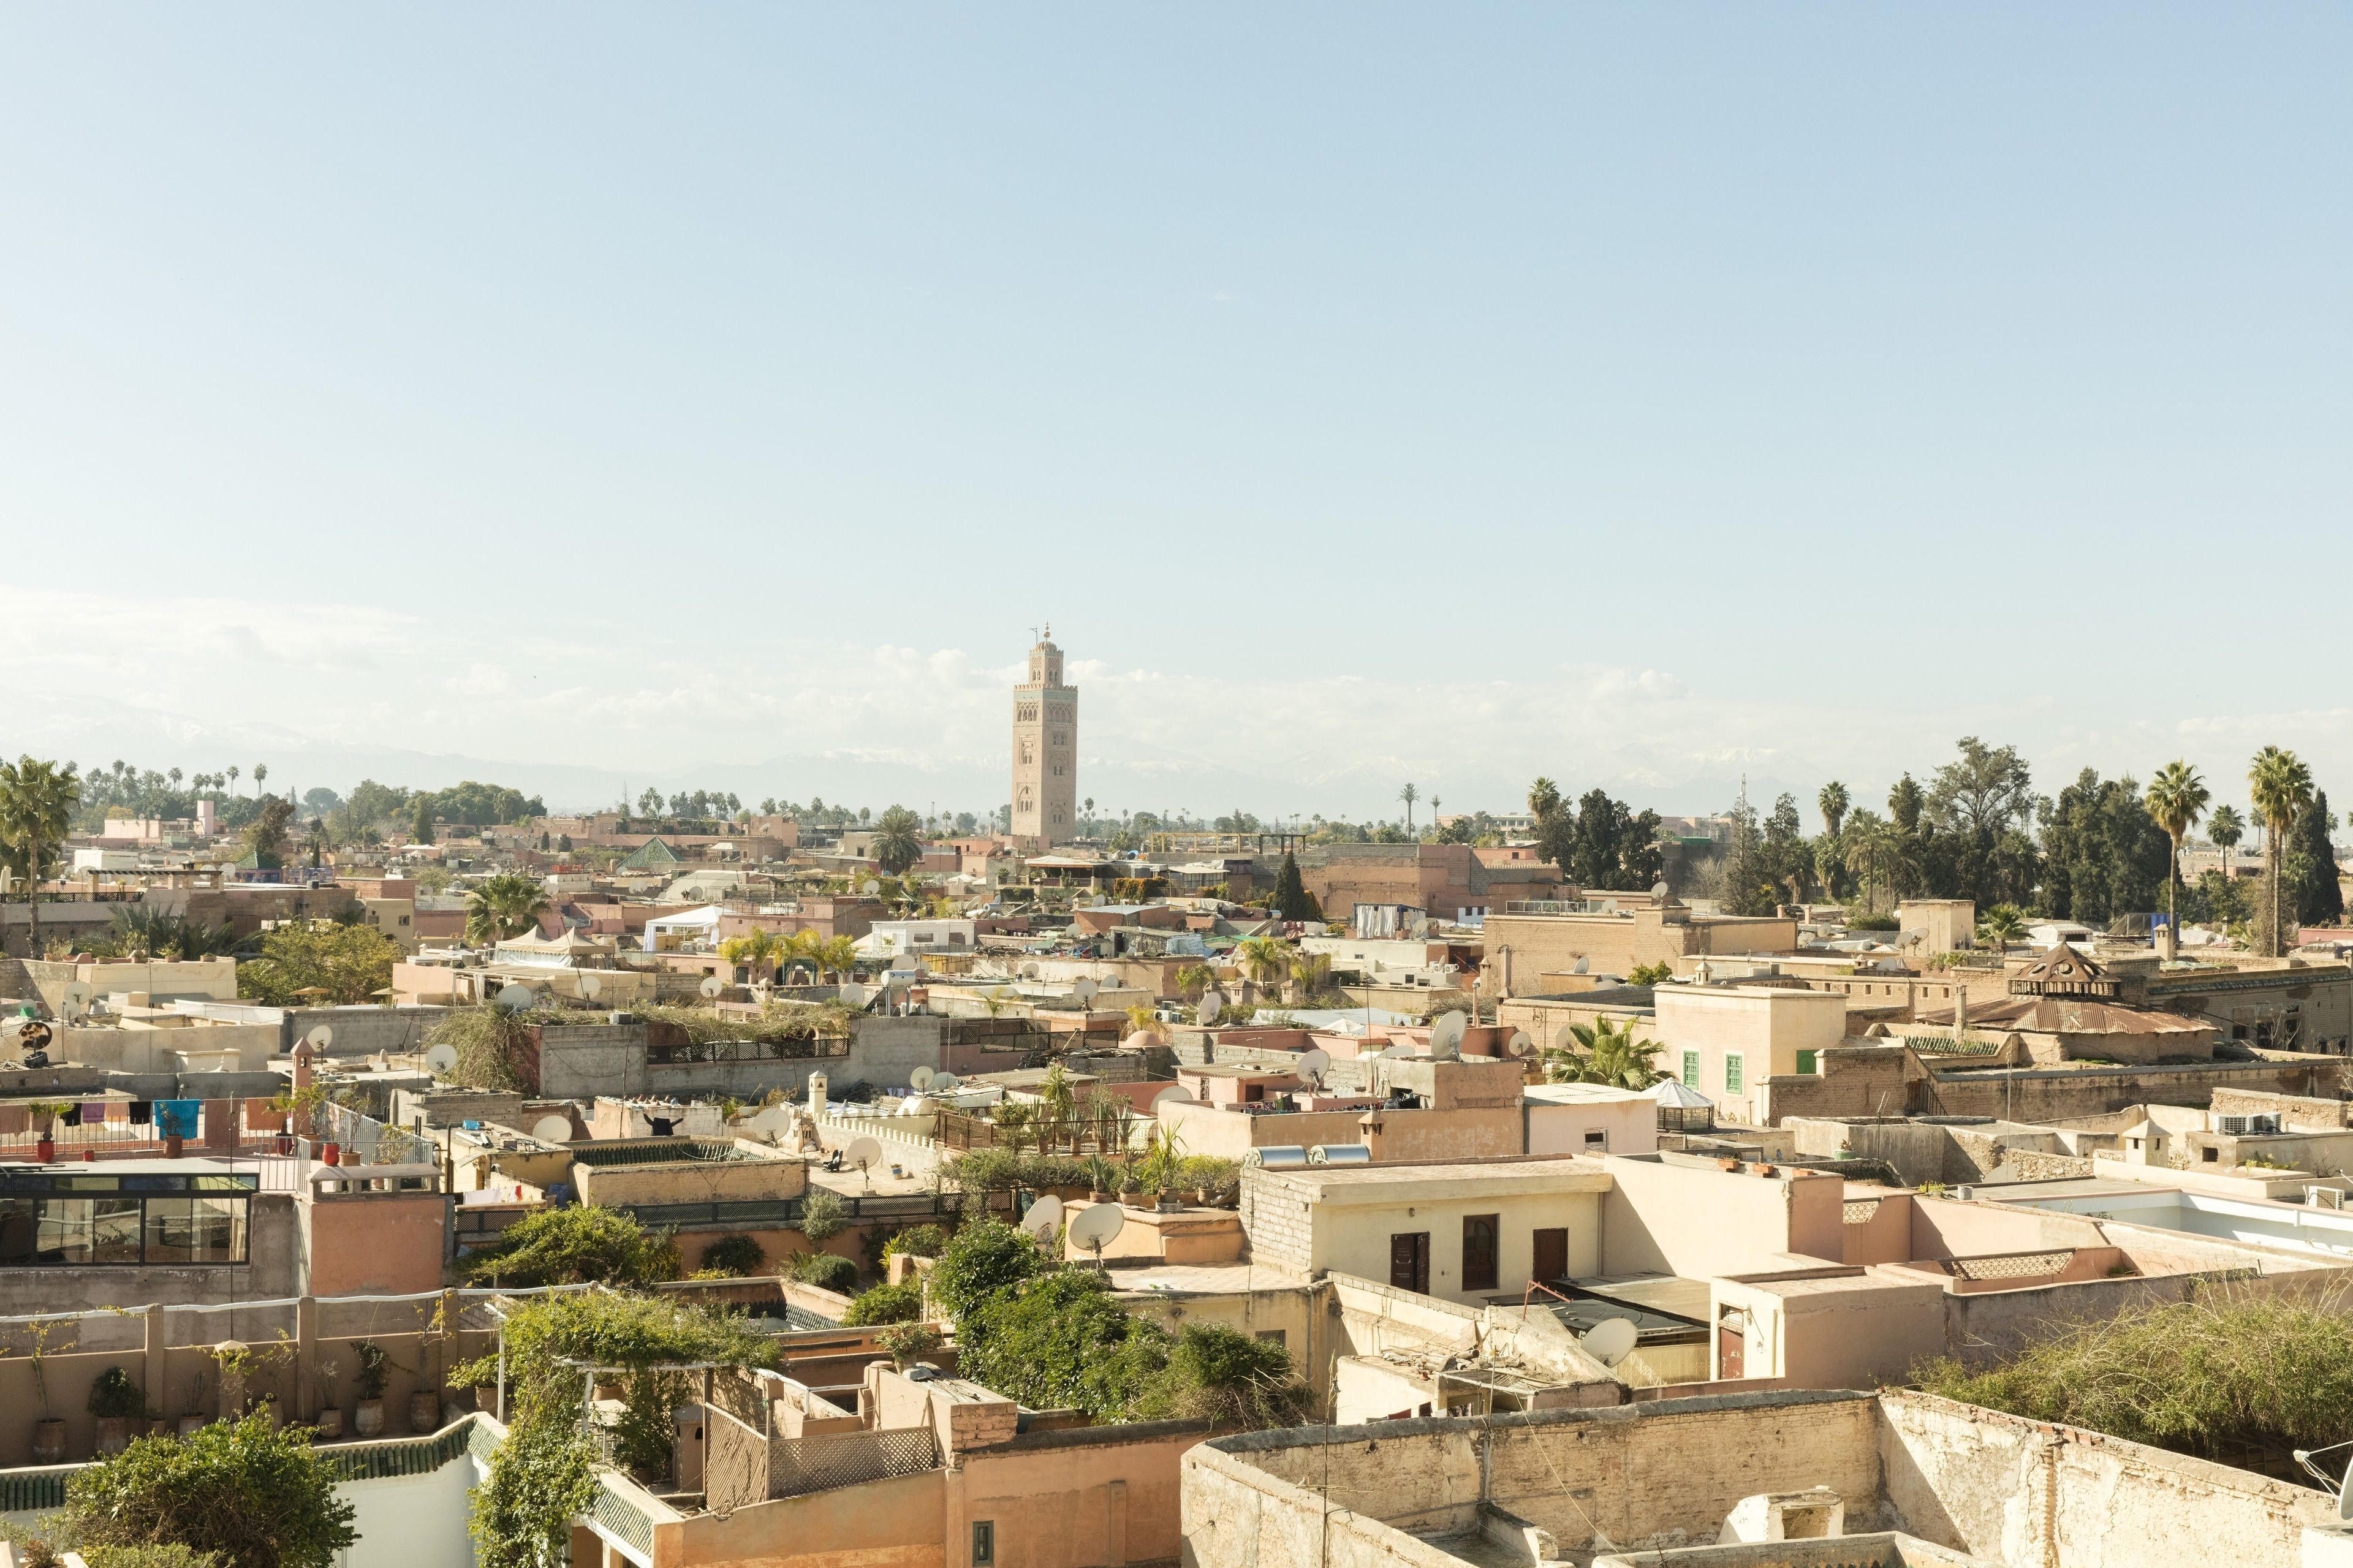 Skyline view of Marrakech, Morocco